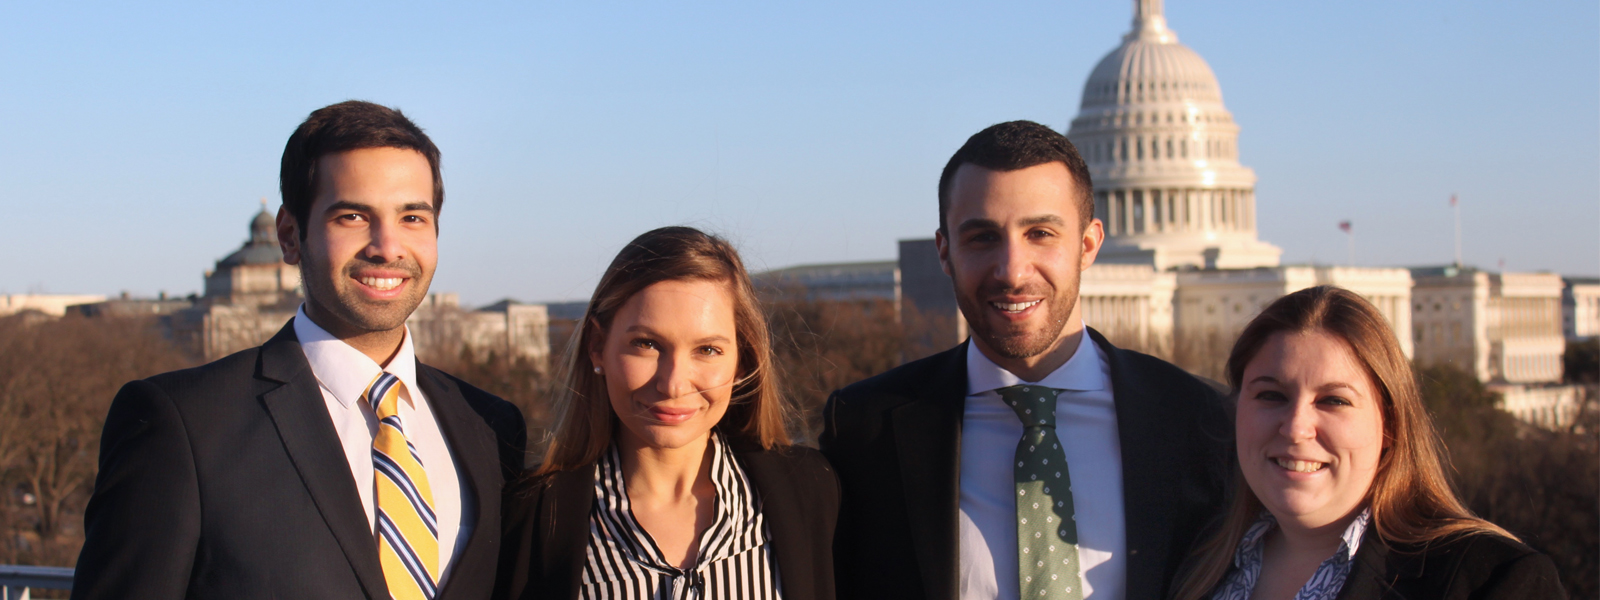 law students in Washington, DC